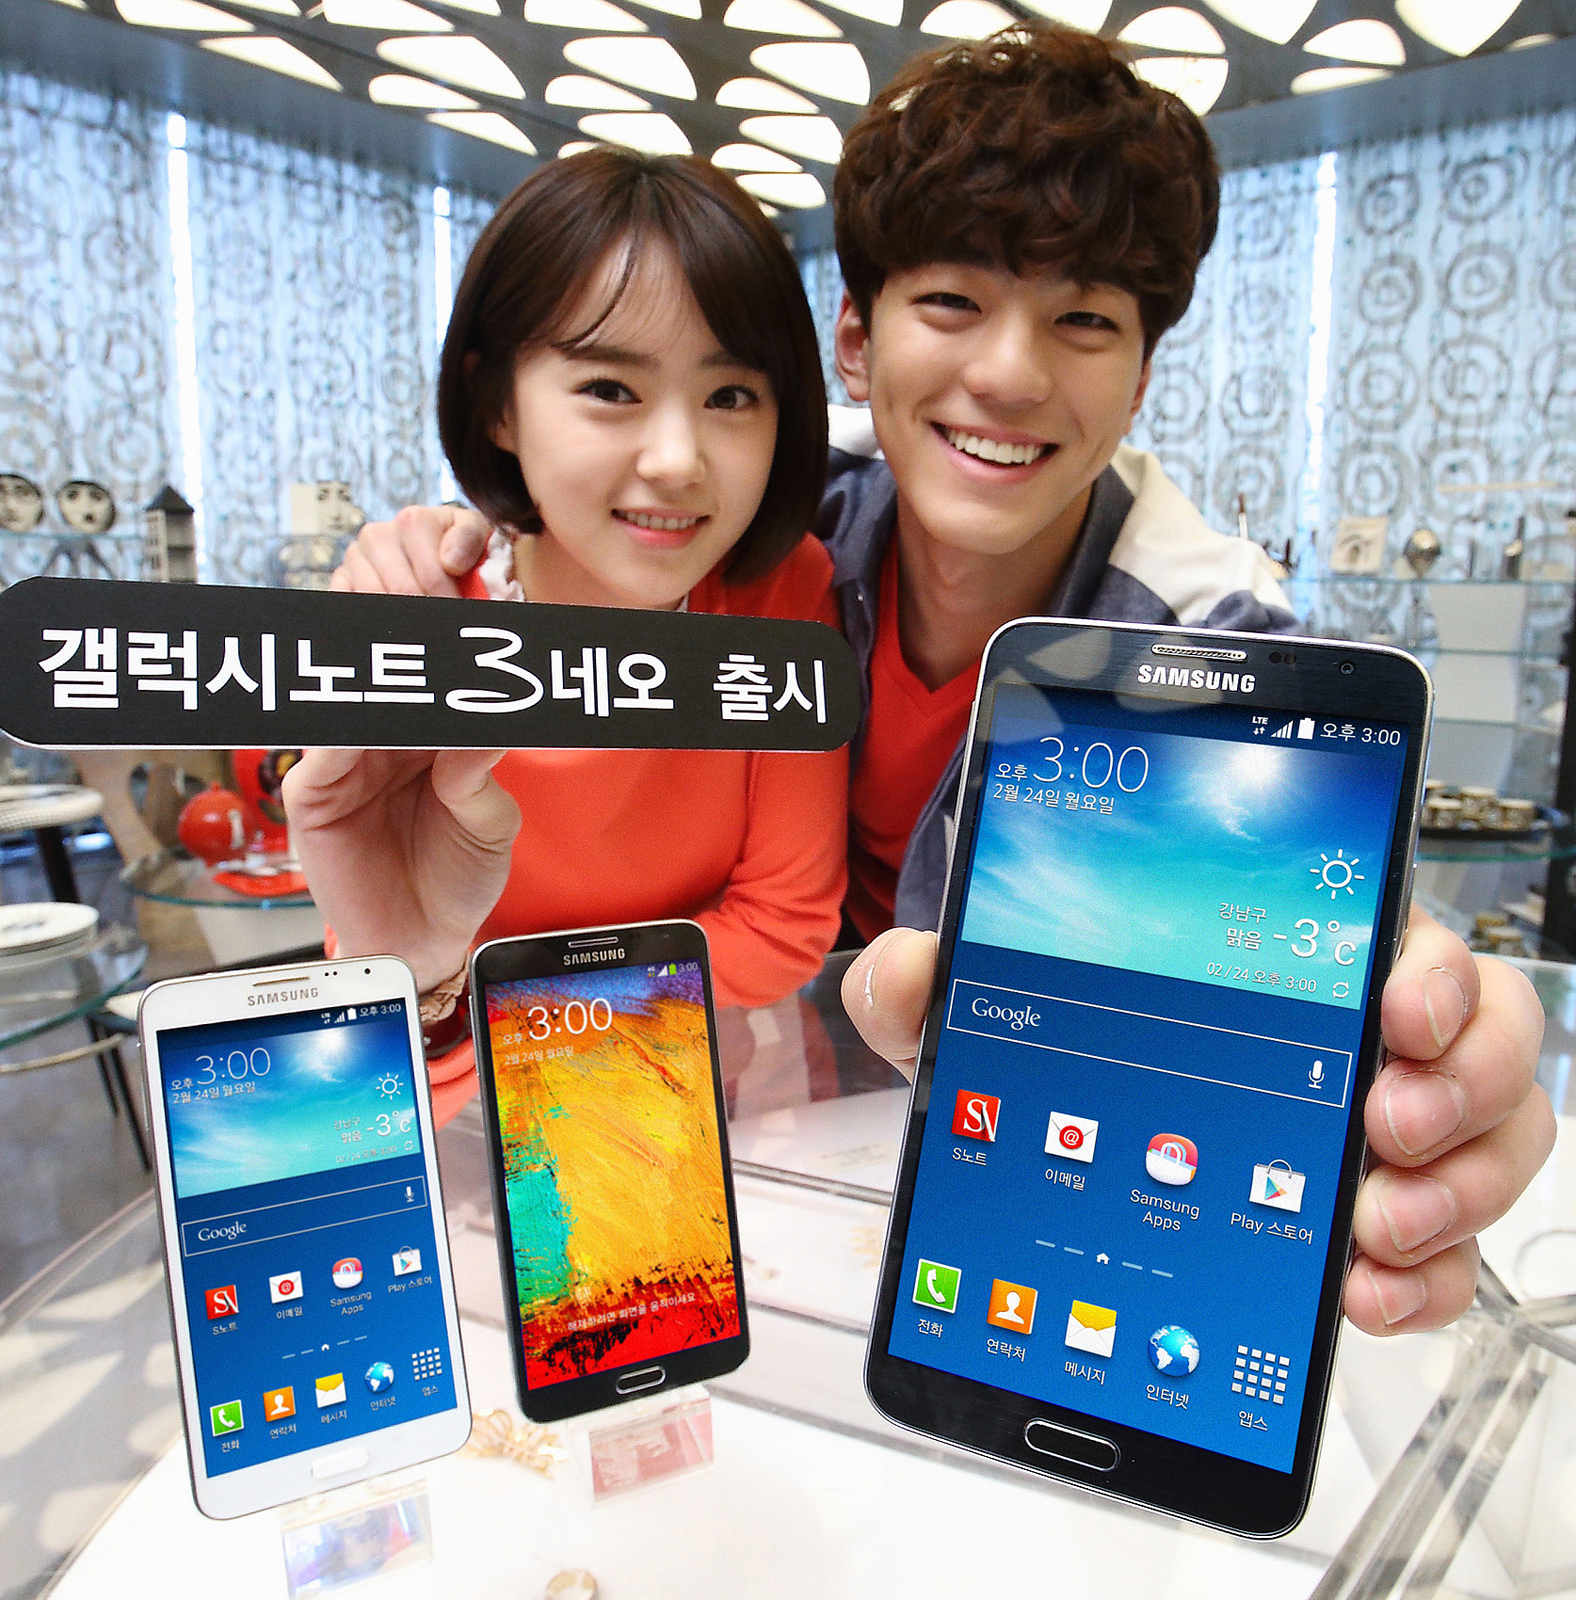 Samsung-launches-the-Galaxy-Note-3-Neo-in-South-Korea (4)